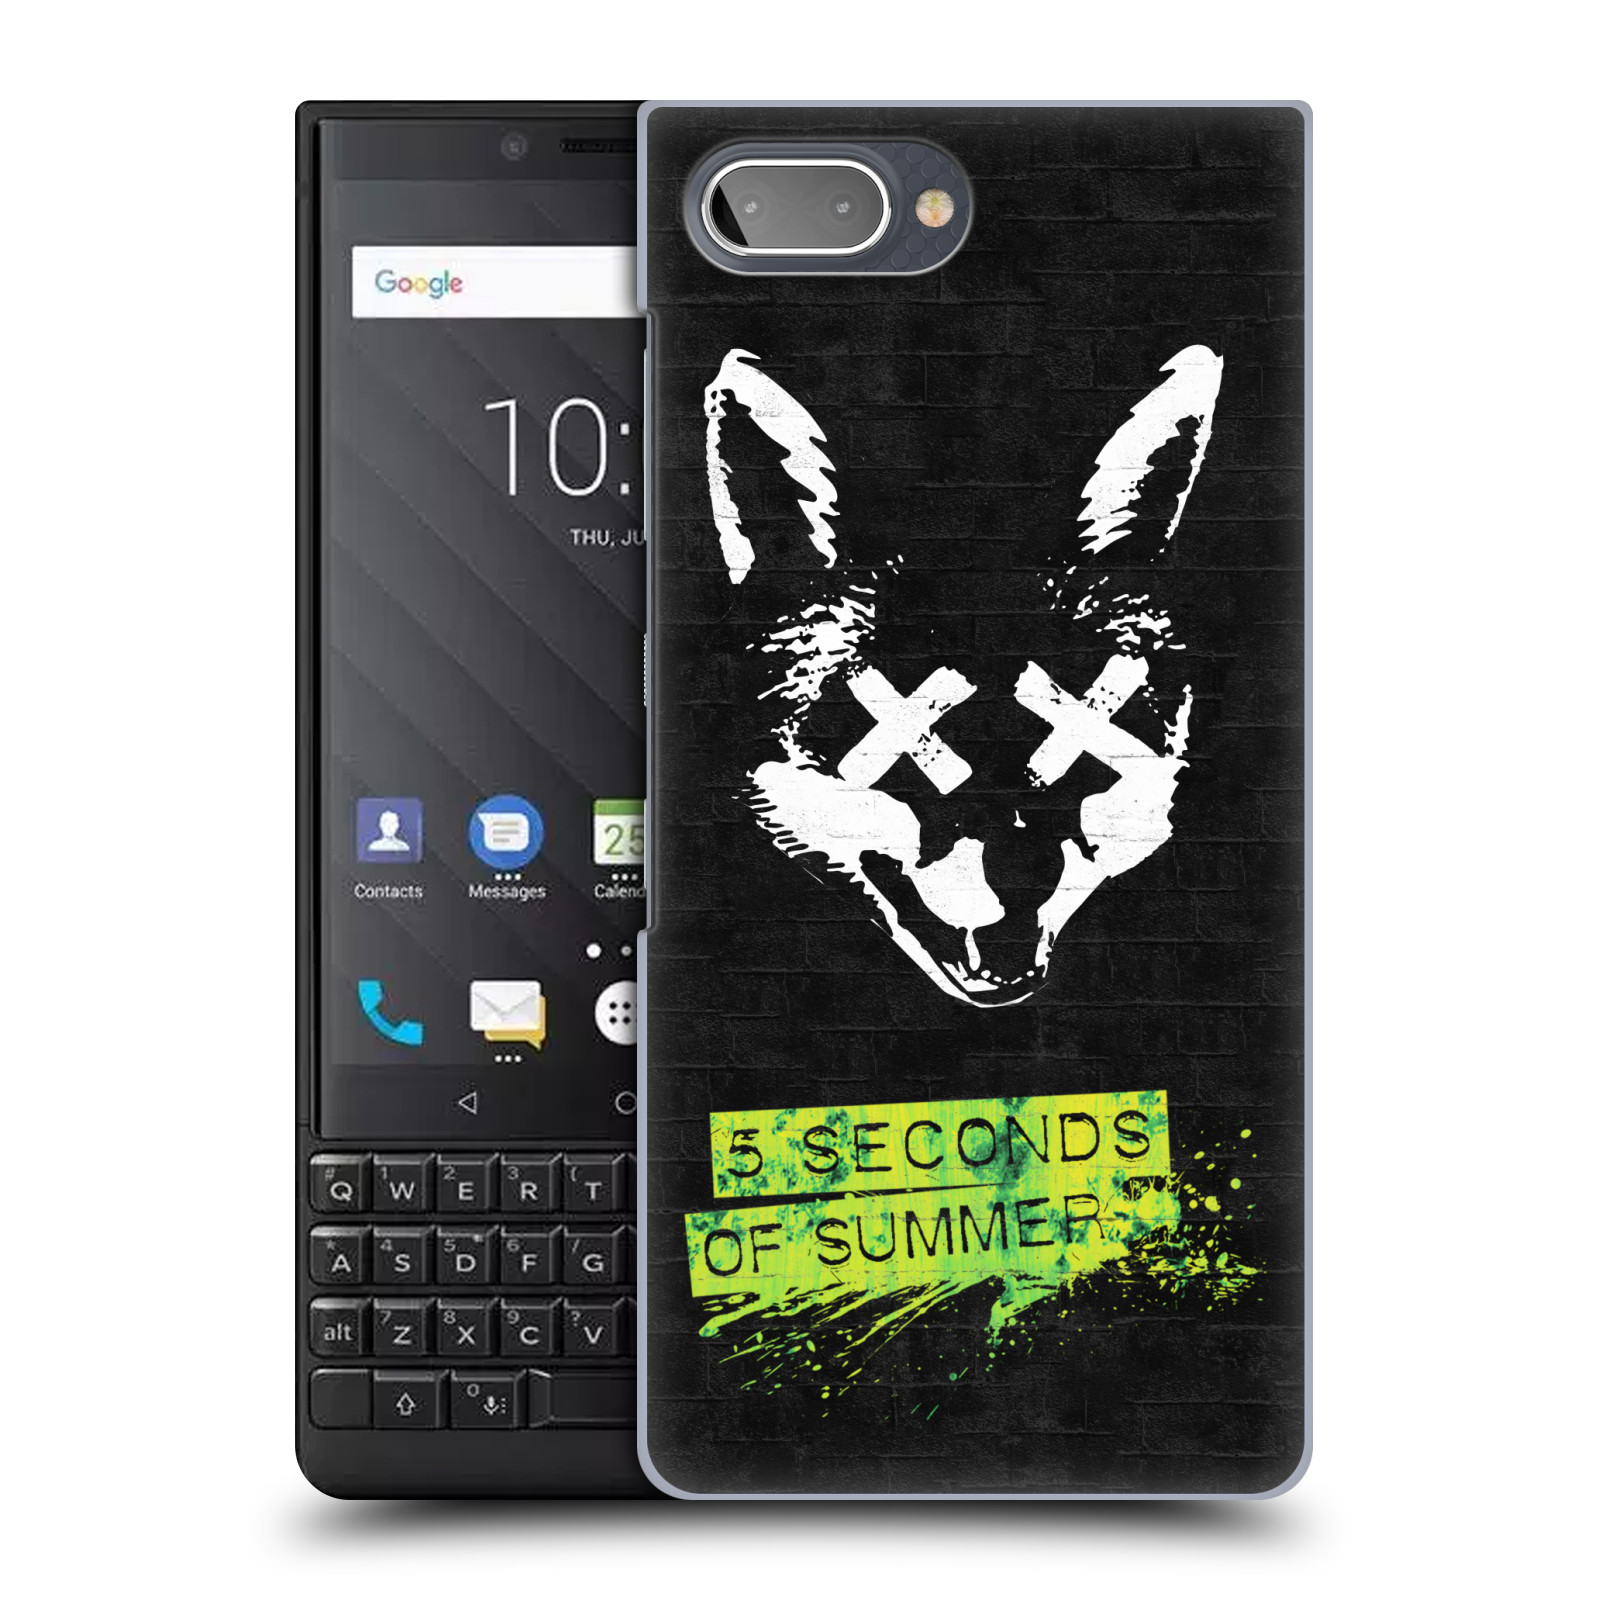 Plastové pouzdro na mobil Blackberry Key 2 - Head Case - 5 Seconds of Summer - Fox